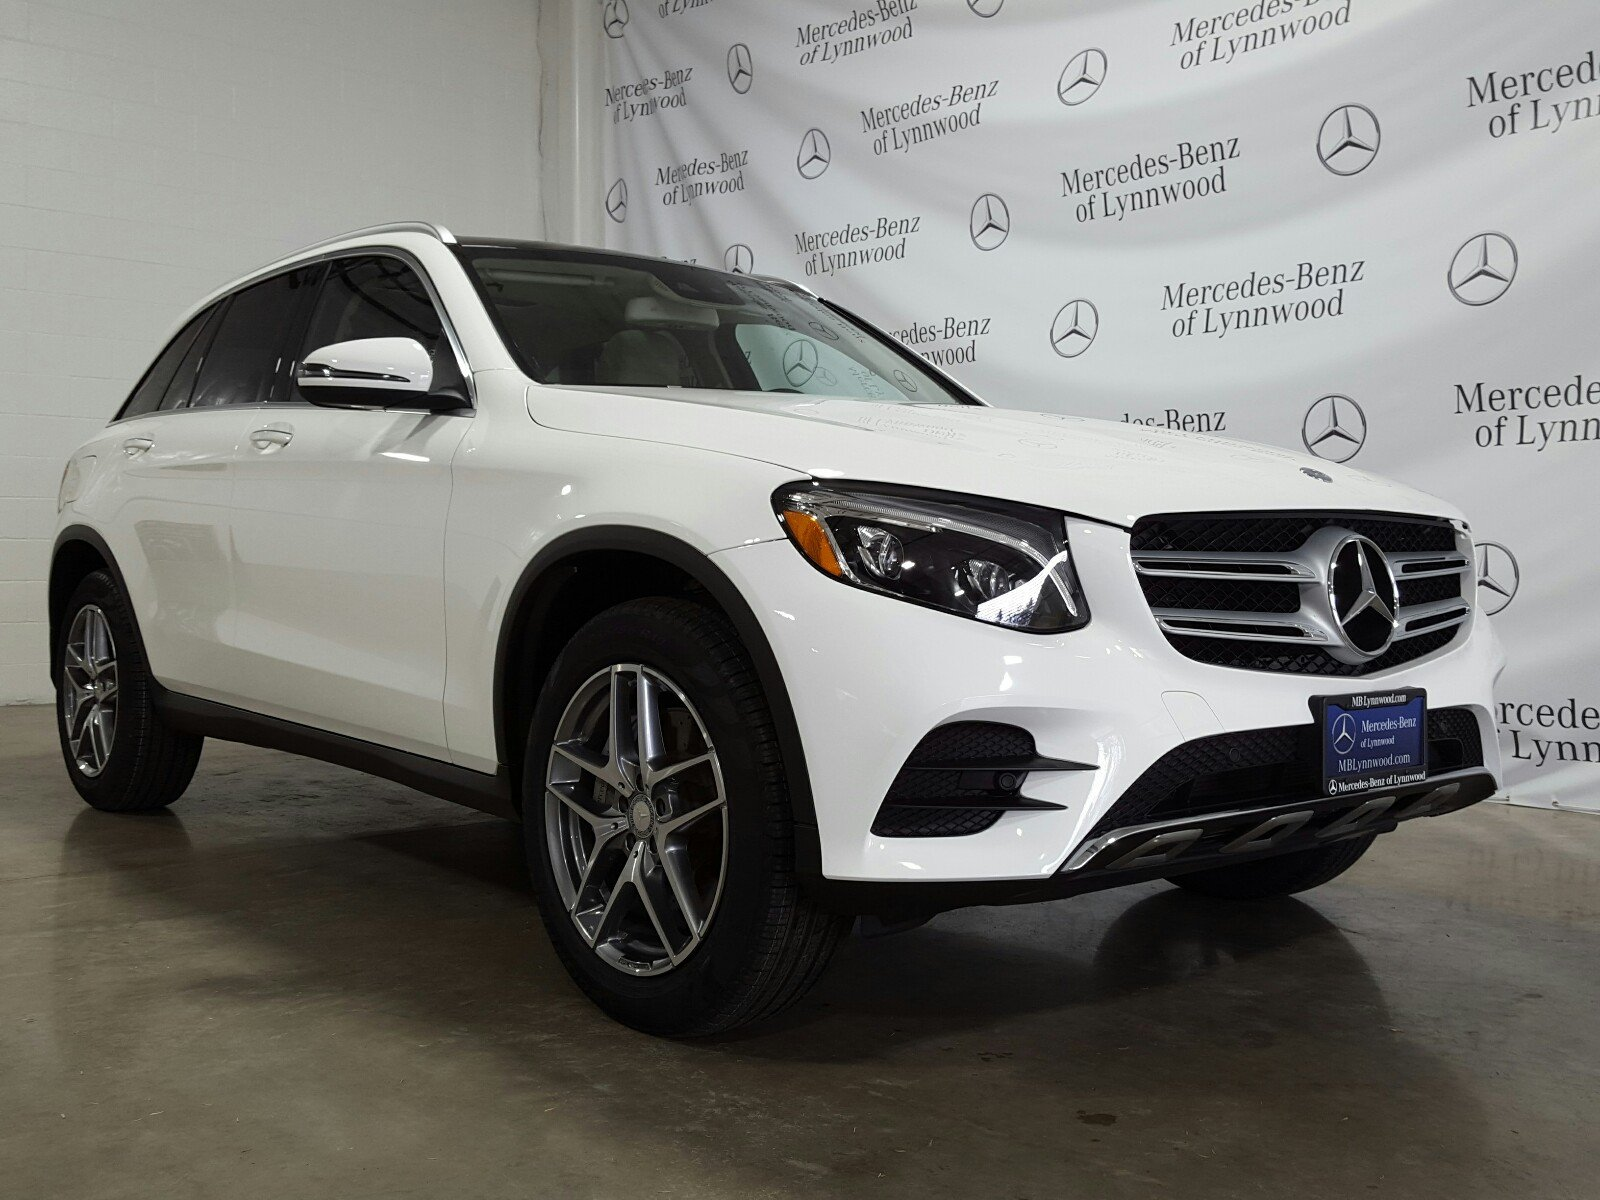 Certified Pre Owned 2016 Mercedes Benz GLC GLC 300 4MATIC SUV in